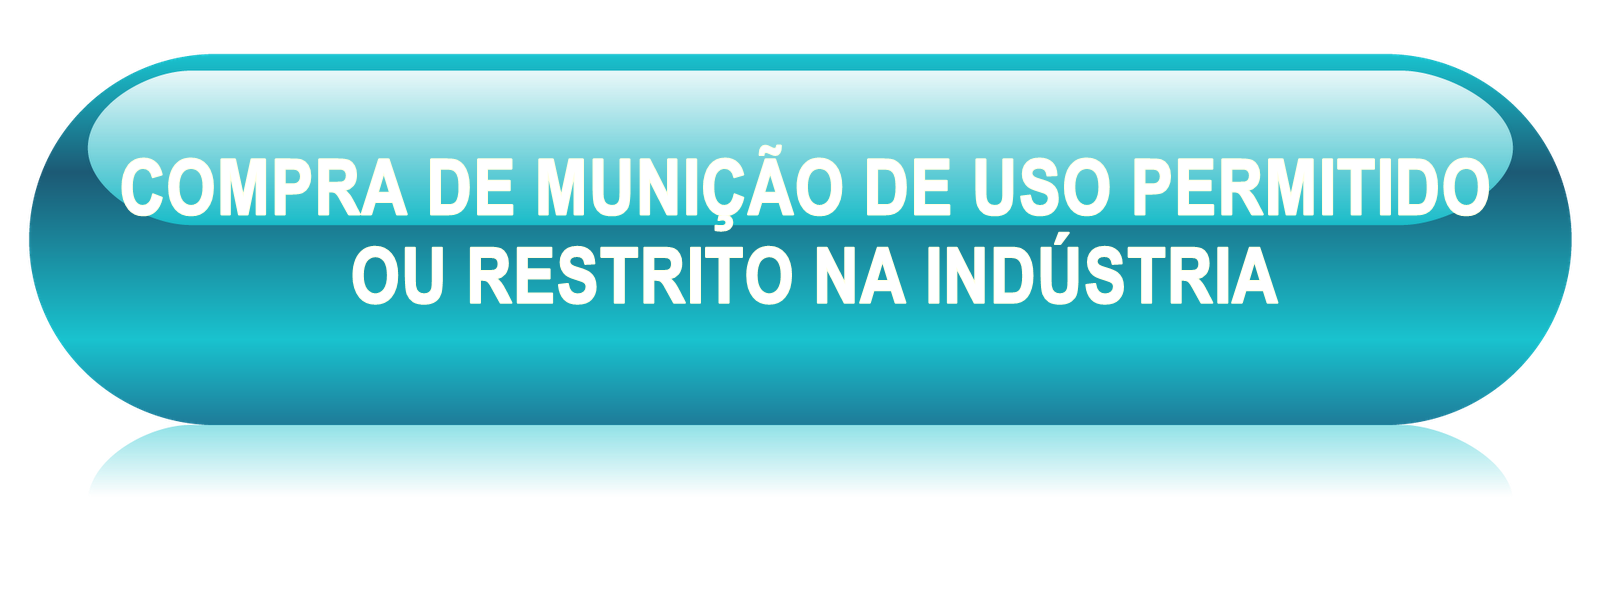 municao d us p ou r na industria